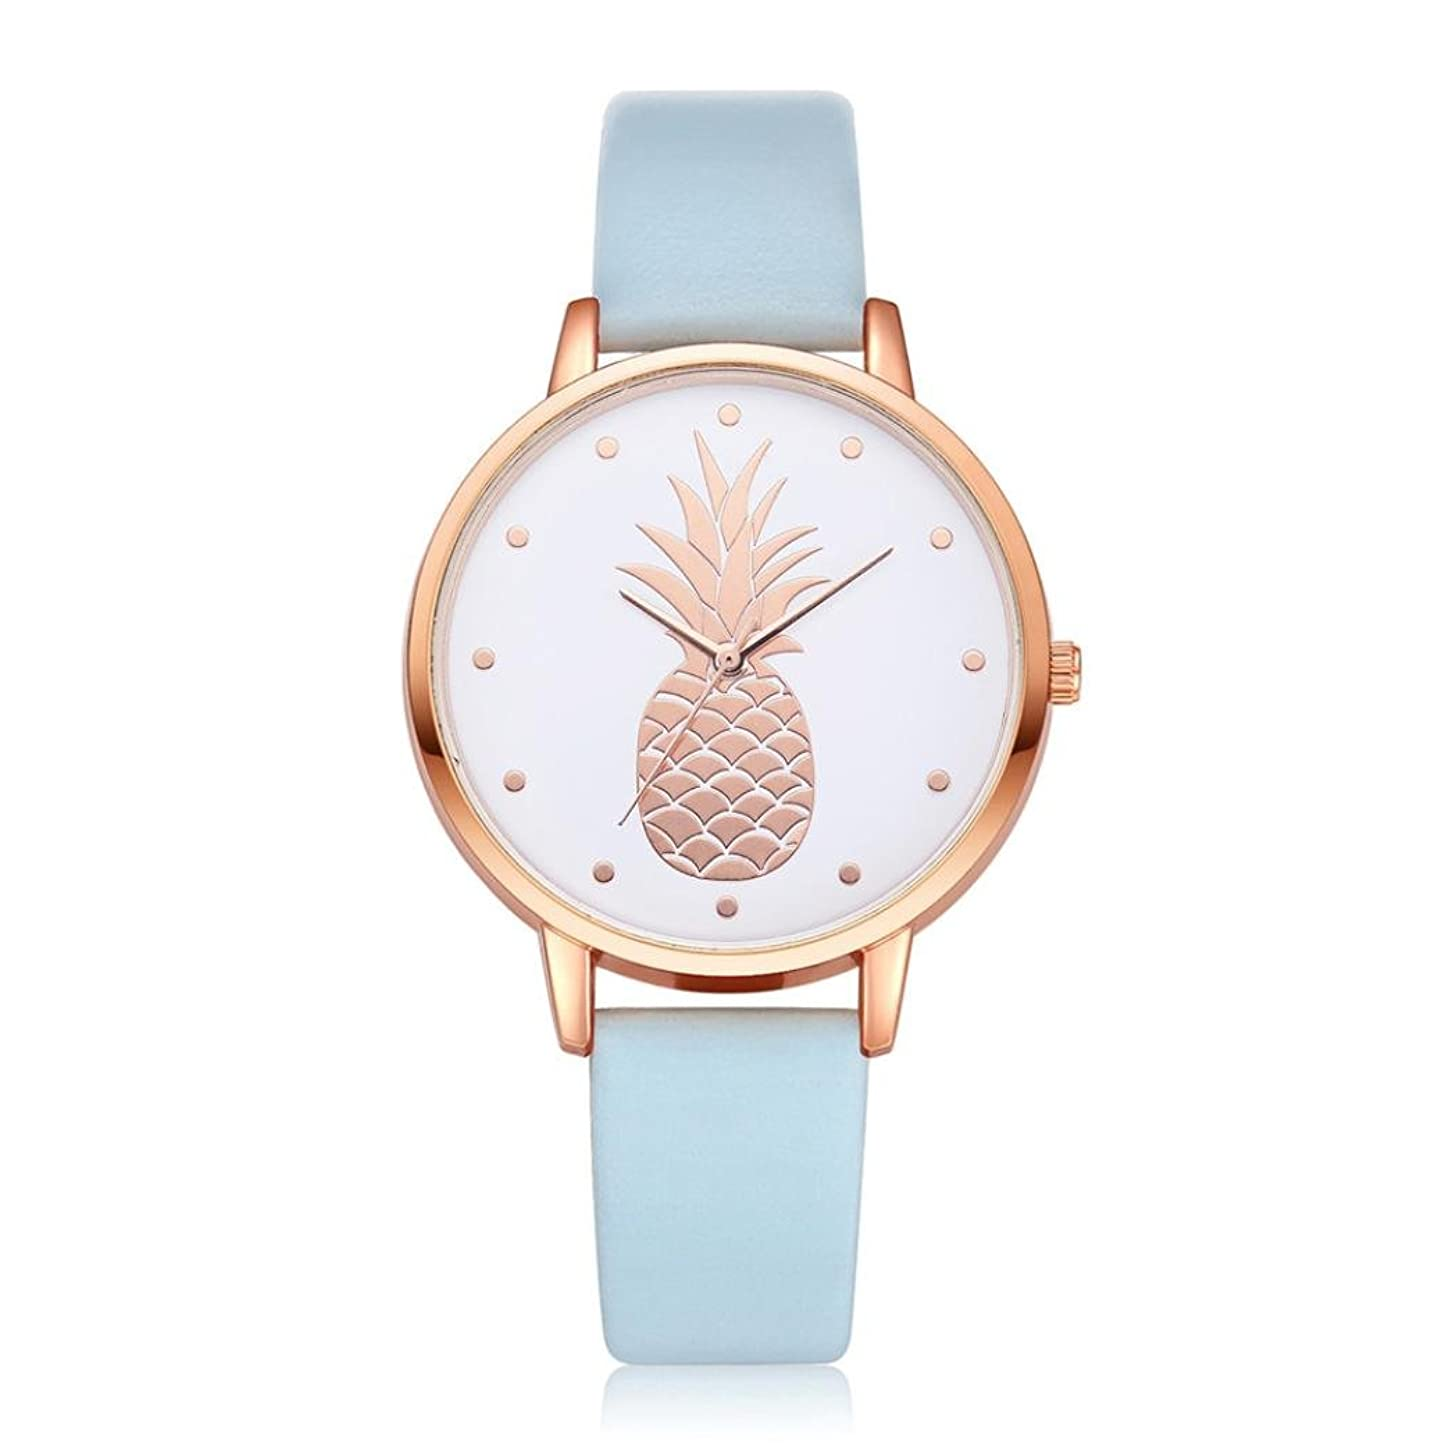 Swyss Women's Simple Fashion Watch Cute Pineapple Pattern Dial Leather Analog Quartz Wrist Watch Chic Sweet Style (G)